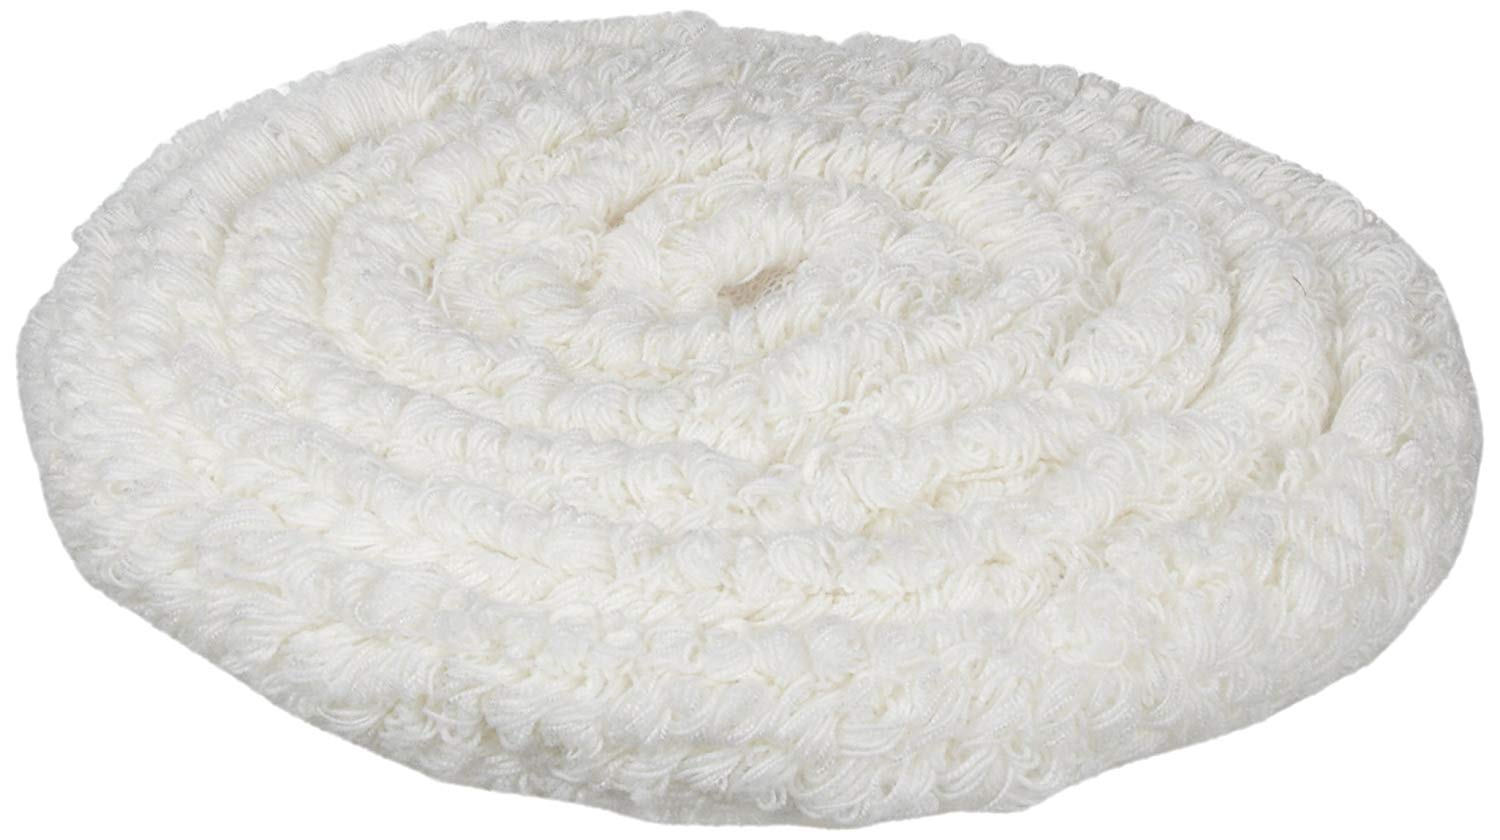 "Rubbermaid Commercial P121 Standard Thickness Carpet Bonnets, Carpet, 21"" Diameter, White"